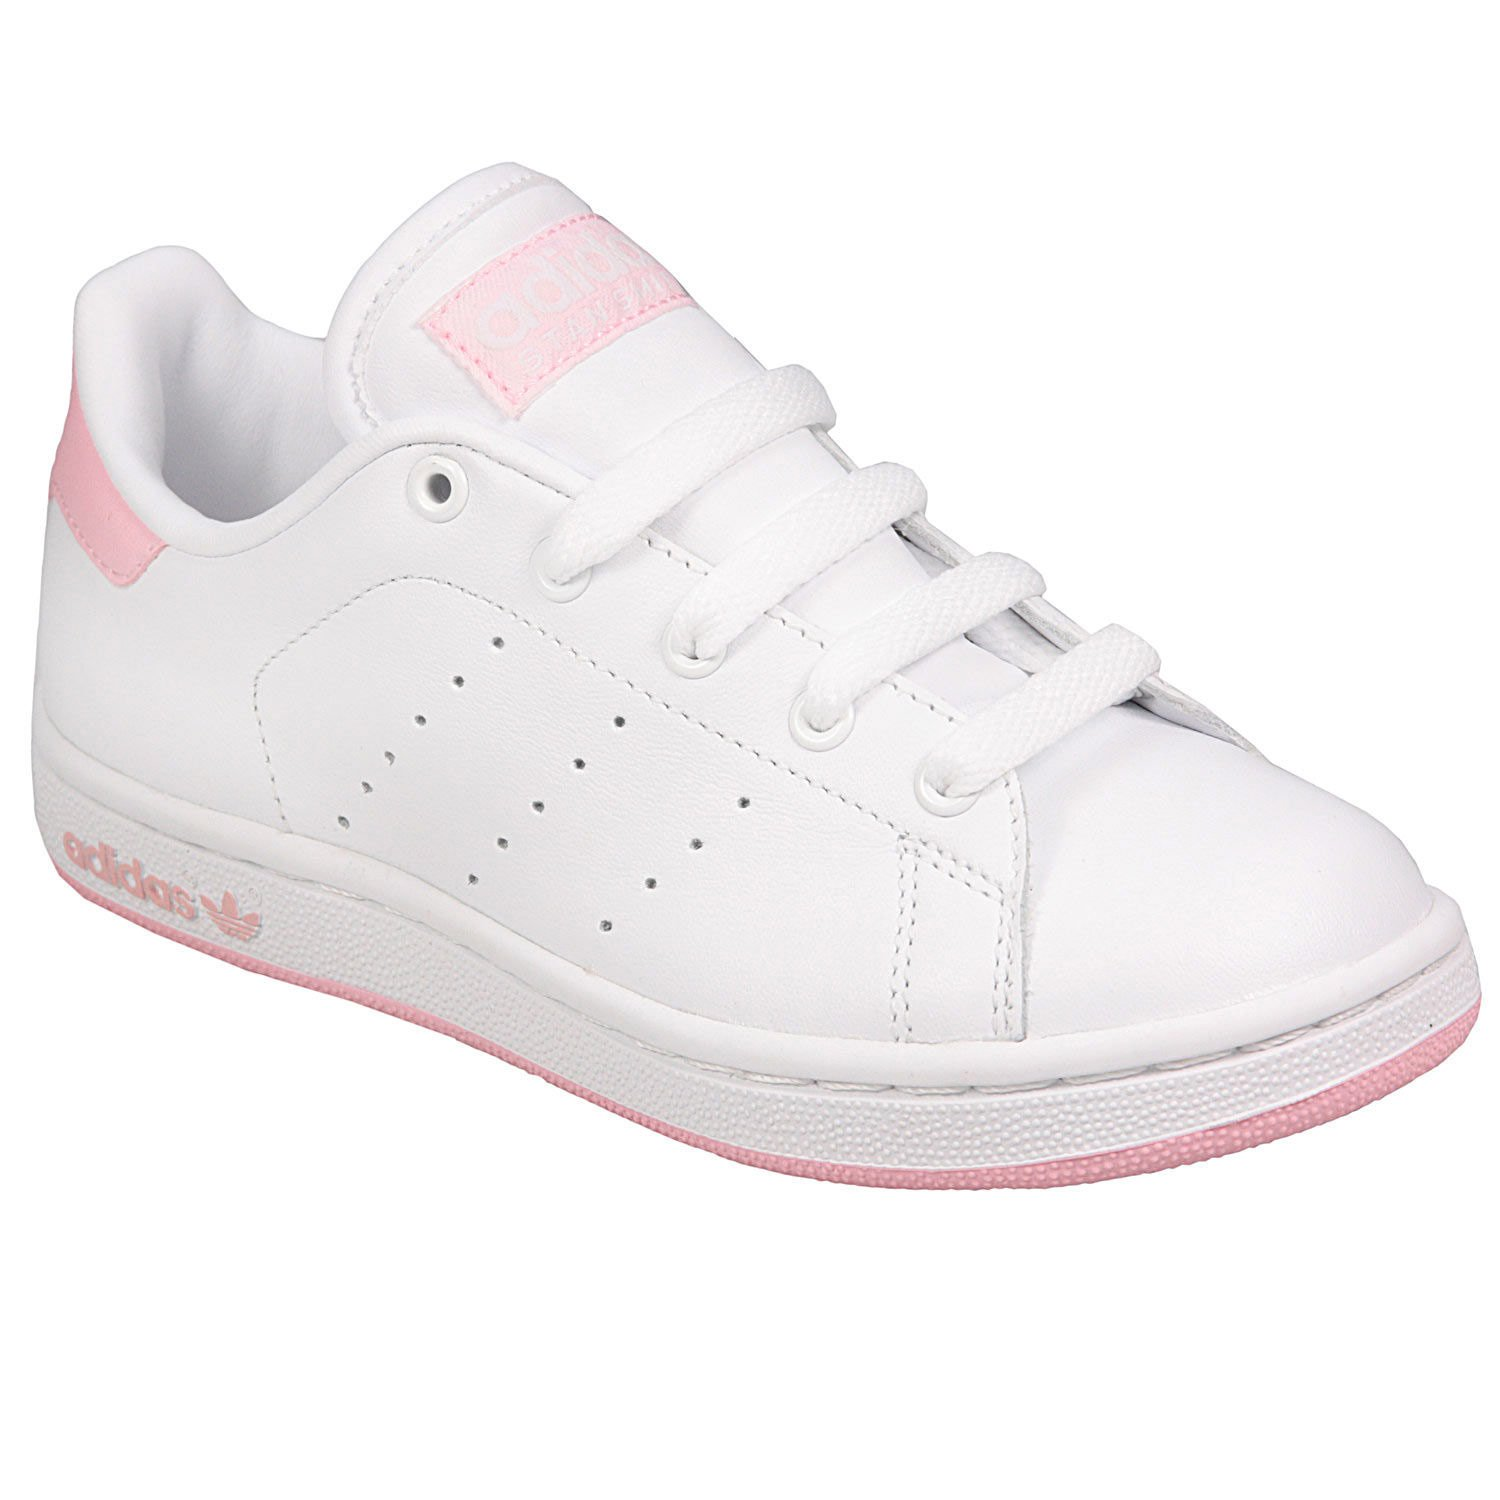 adidas Girls Originals Stan Smith Junior Trainer in White - UK 5.5   Amazon.co.uk  Shoes   Bags 87ec22a6f